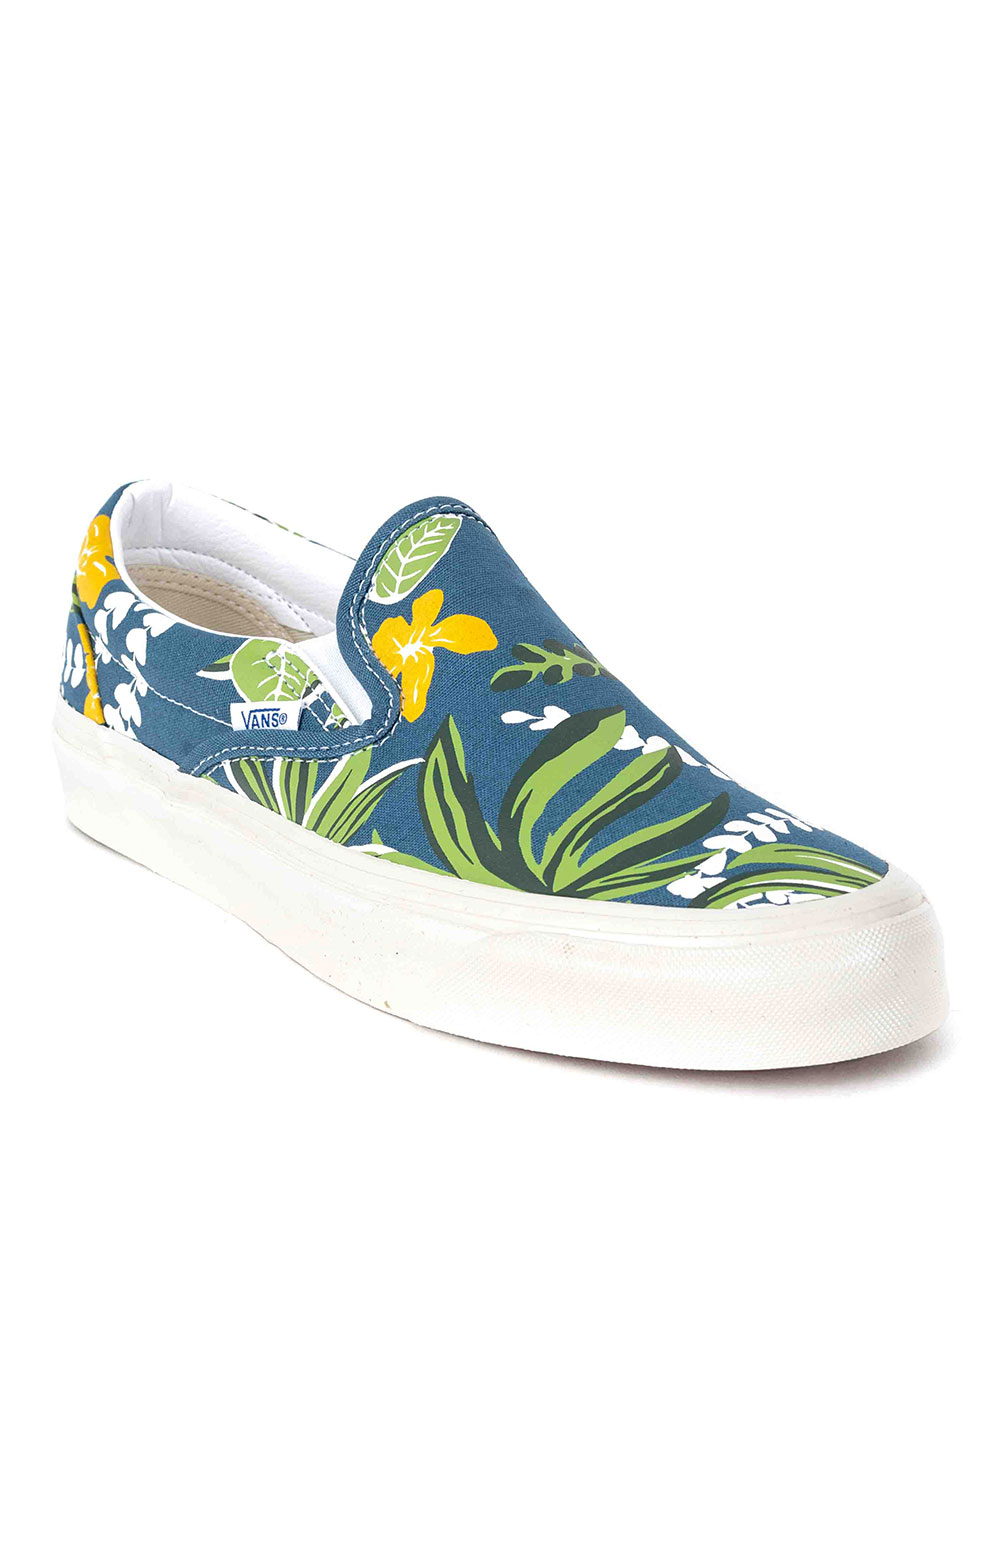 (JEXWVQ) Anaheim Factory Classic Slip-On 98 DX Shoes - OG Aloha Navy 3